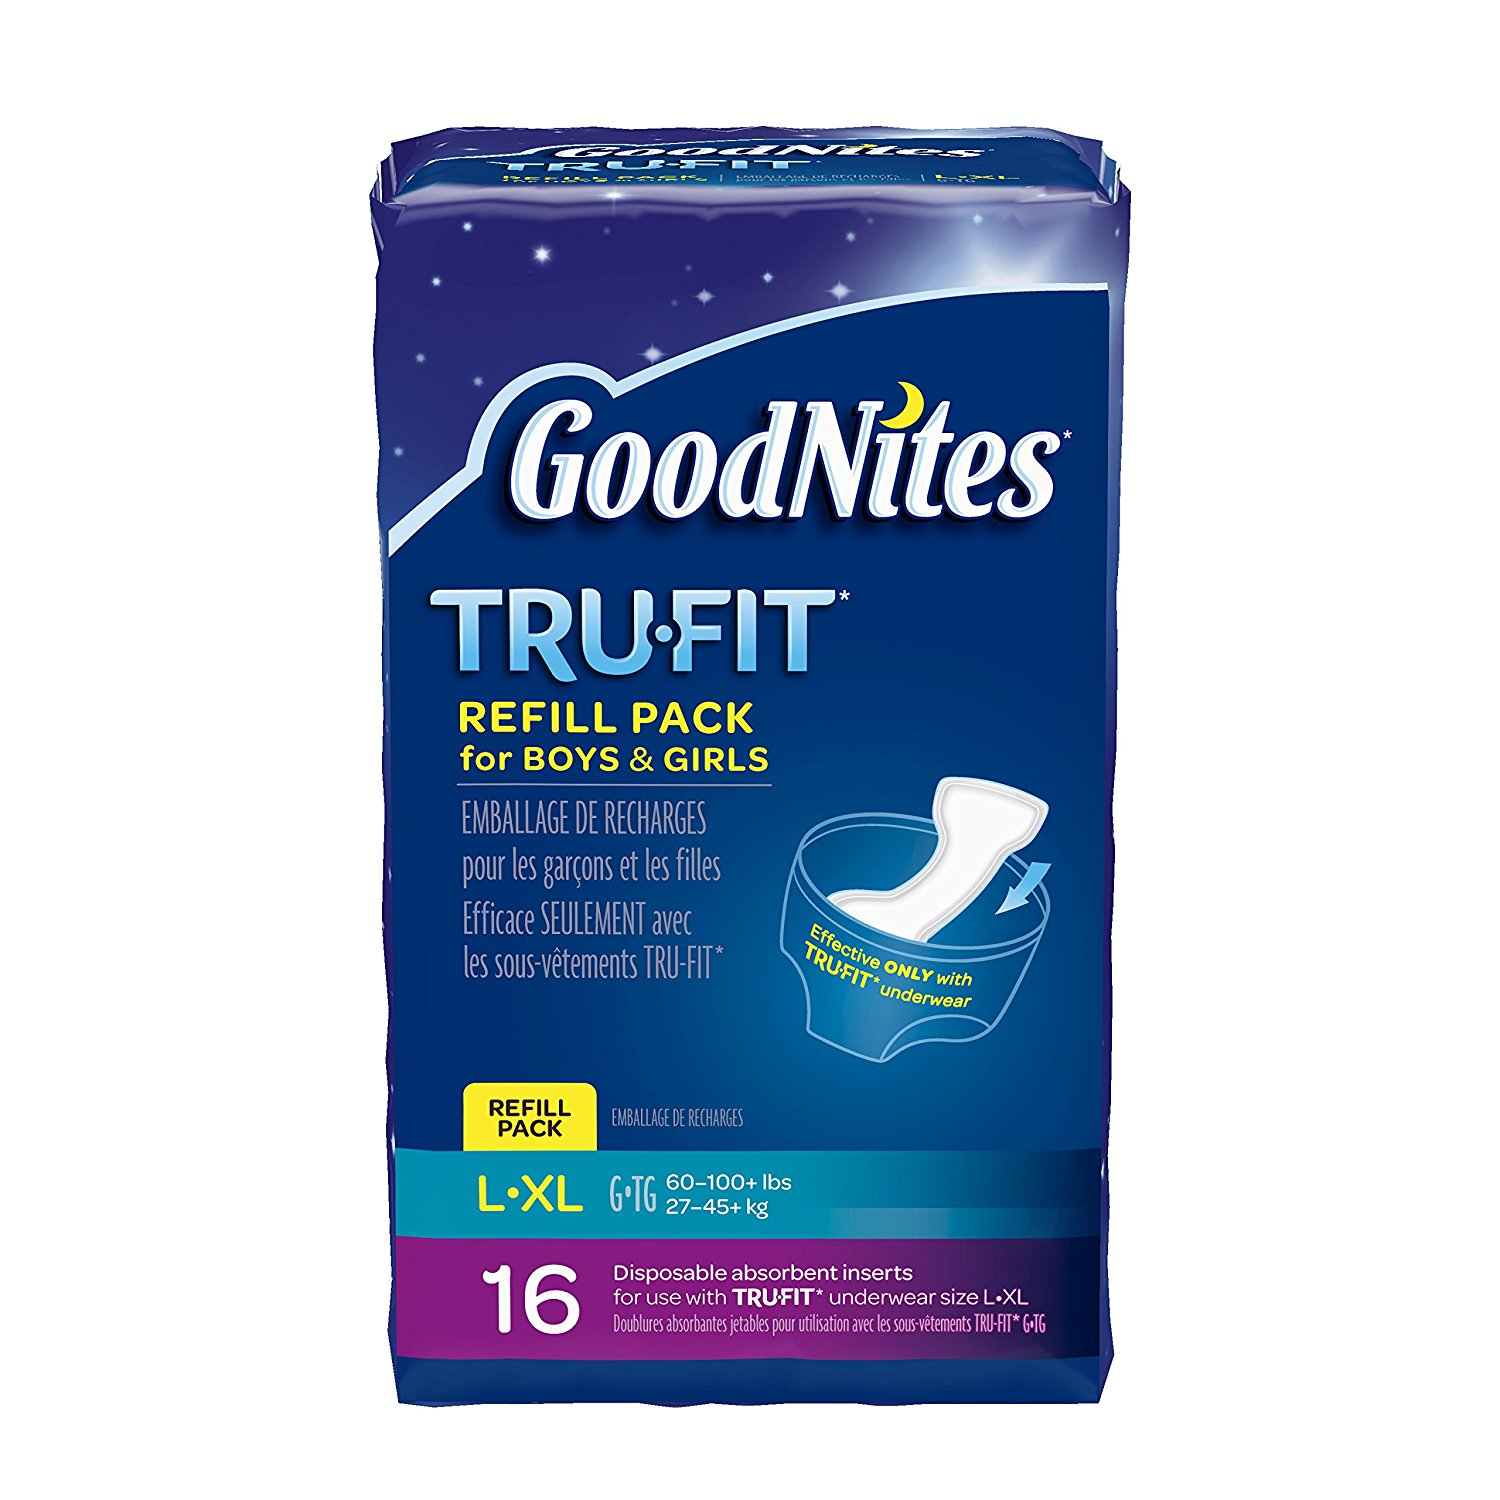 Goodnites TRU-FIT Refill Pack Disposable Absorbent Insert...